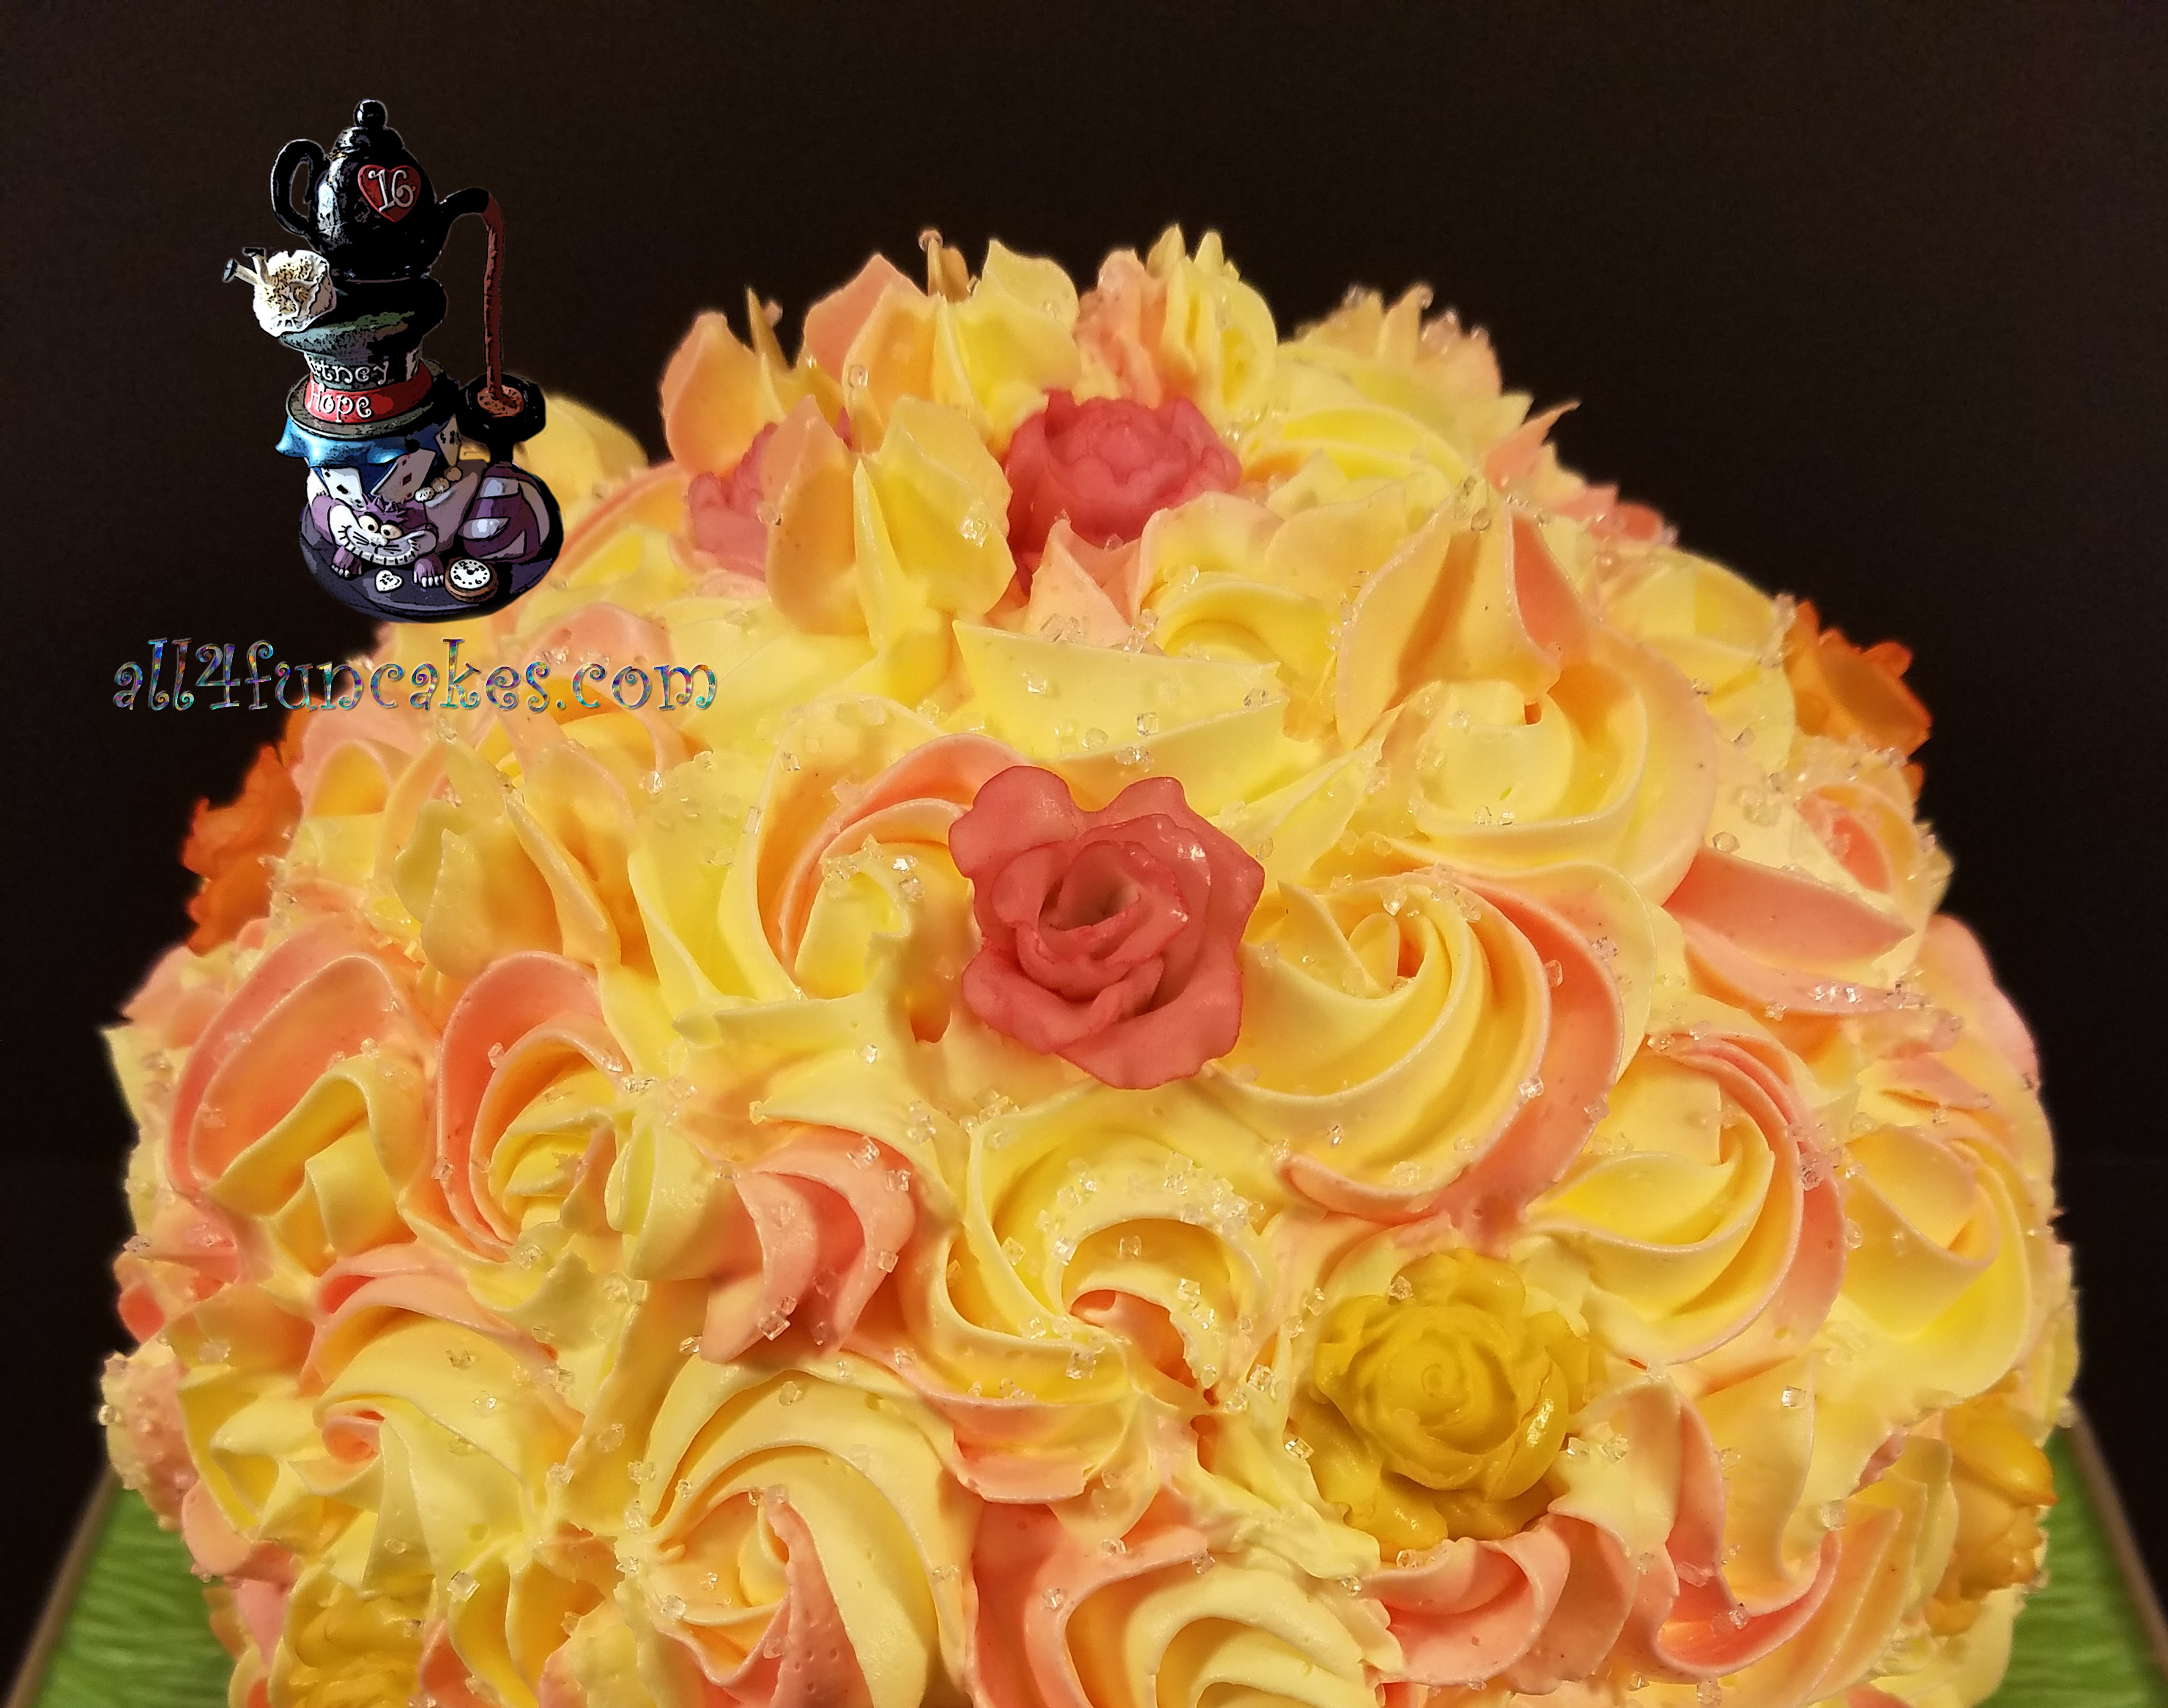 Special Occasion Lemon Flowers Mothers Day Cake by All4Fun Cakes LLC 2017